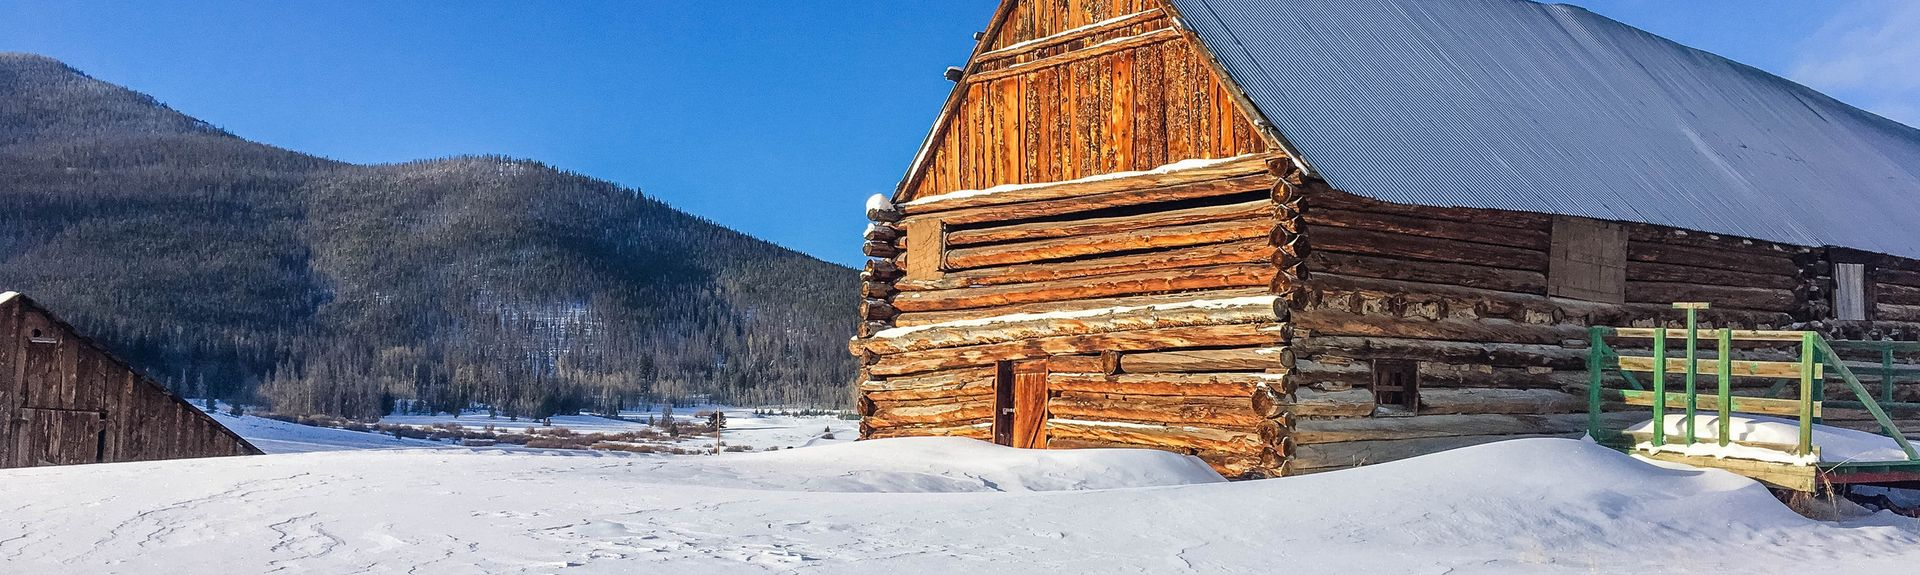 Ski Granby Ranch, Granby, Colorado, United States of America